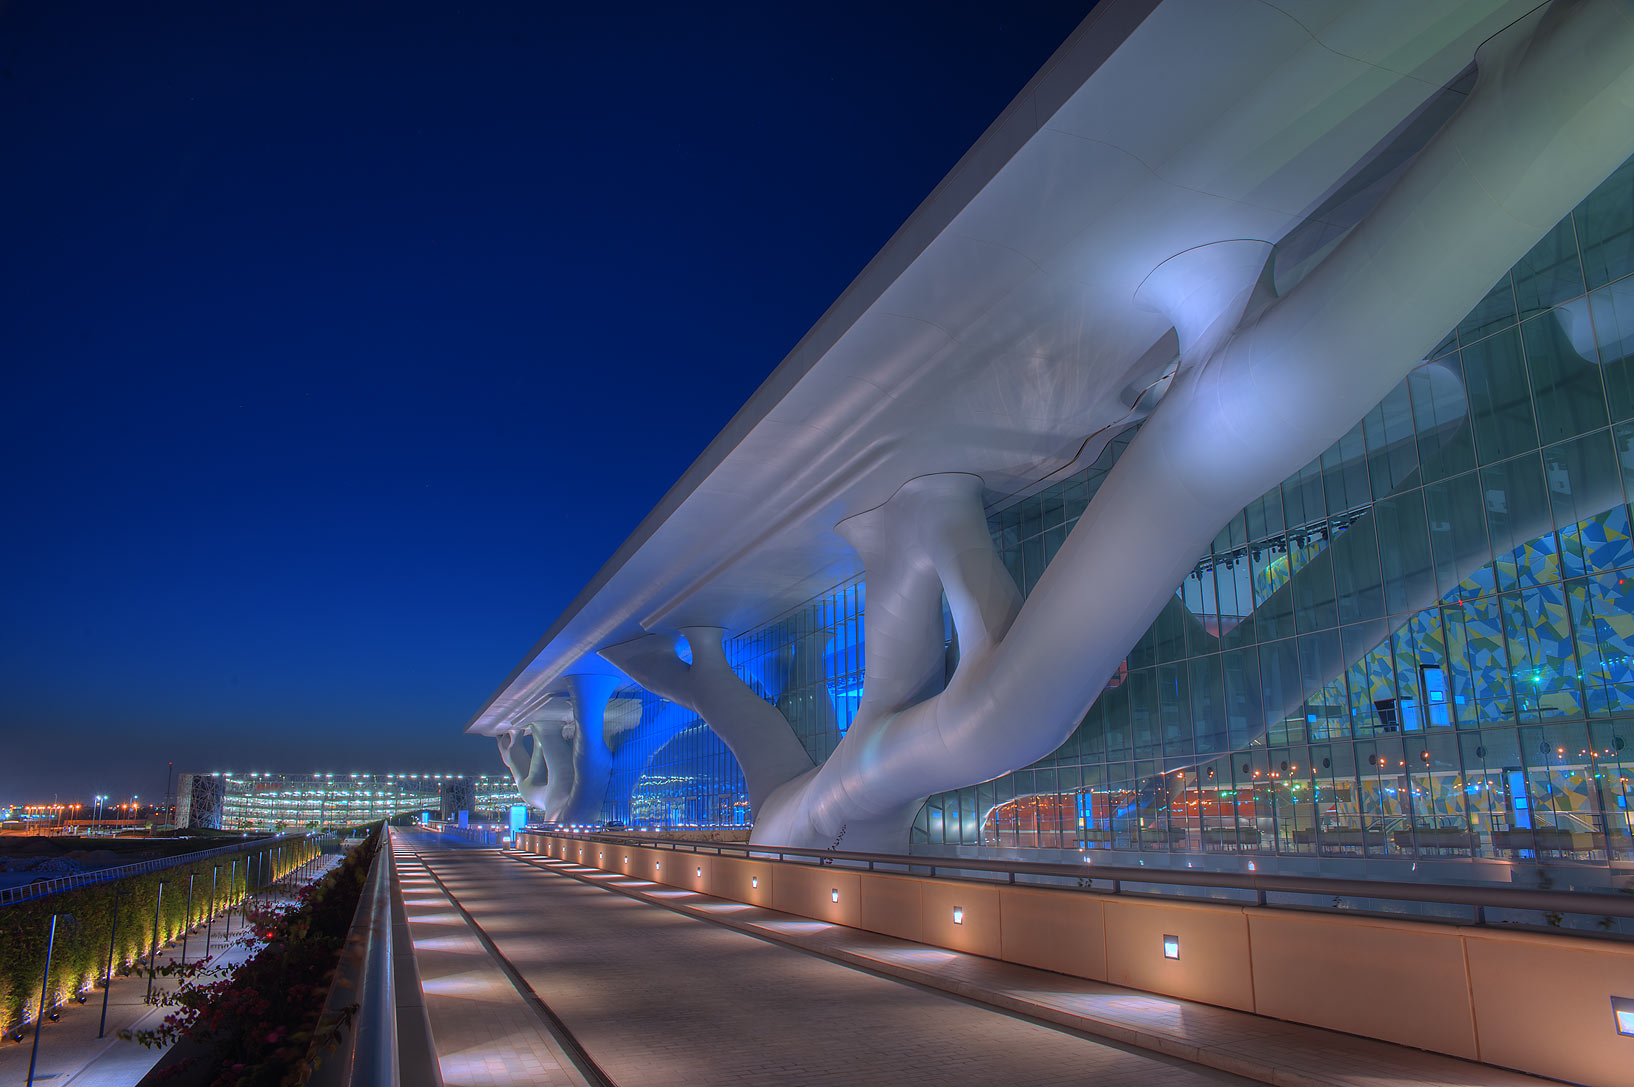 Entrance of National Convention Centre (QNCC) at...supporting the roof. Doha, Qatar